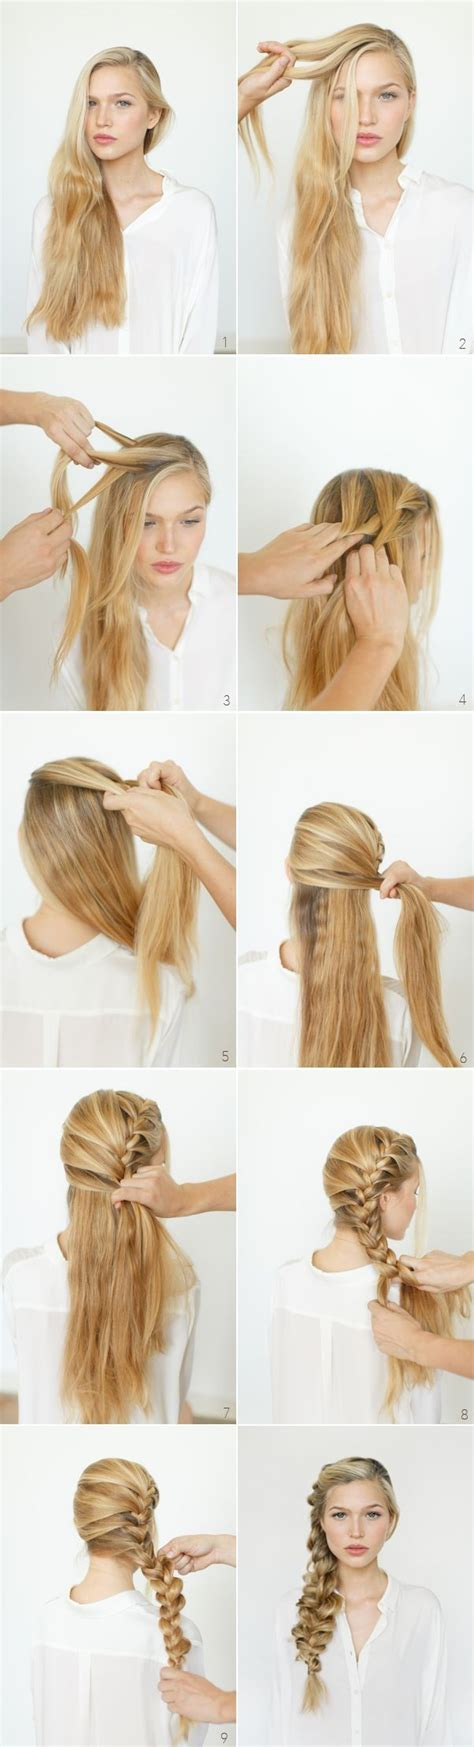 30 step by step hairstyles for long hair tutorials you will love step by step hairstyles for long hair long hairstyles